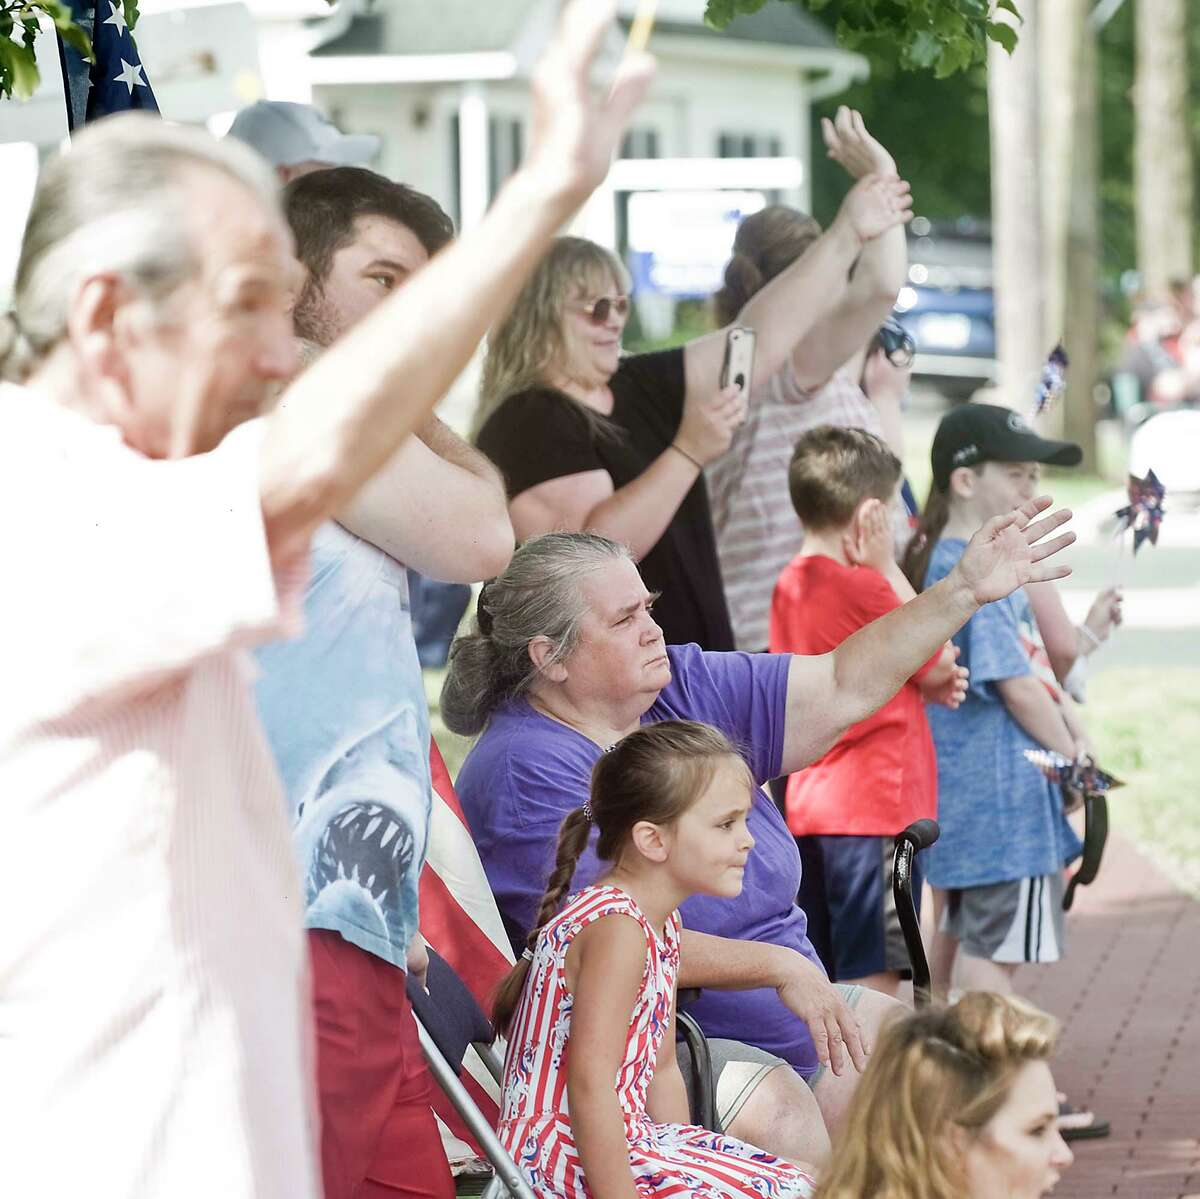 Spectators wave at last year's Fourth of July car parade in New Fairfield, Conn.